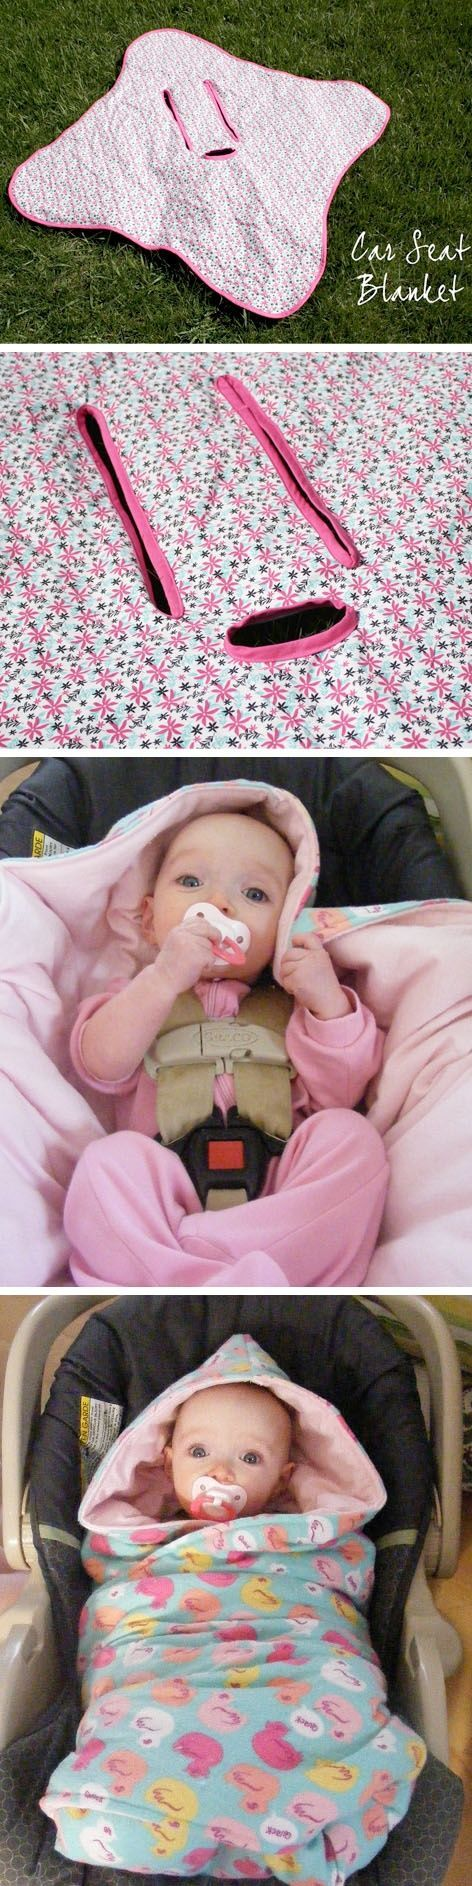 DIY: Baby car seat blanket this is awesome!... I could make some of these out of fleece.